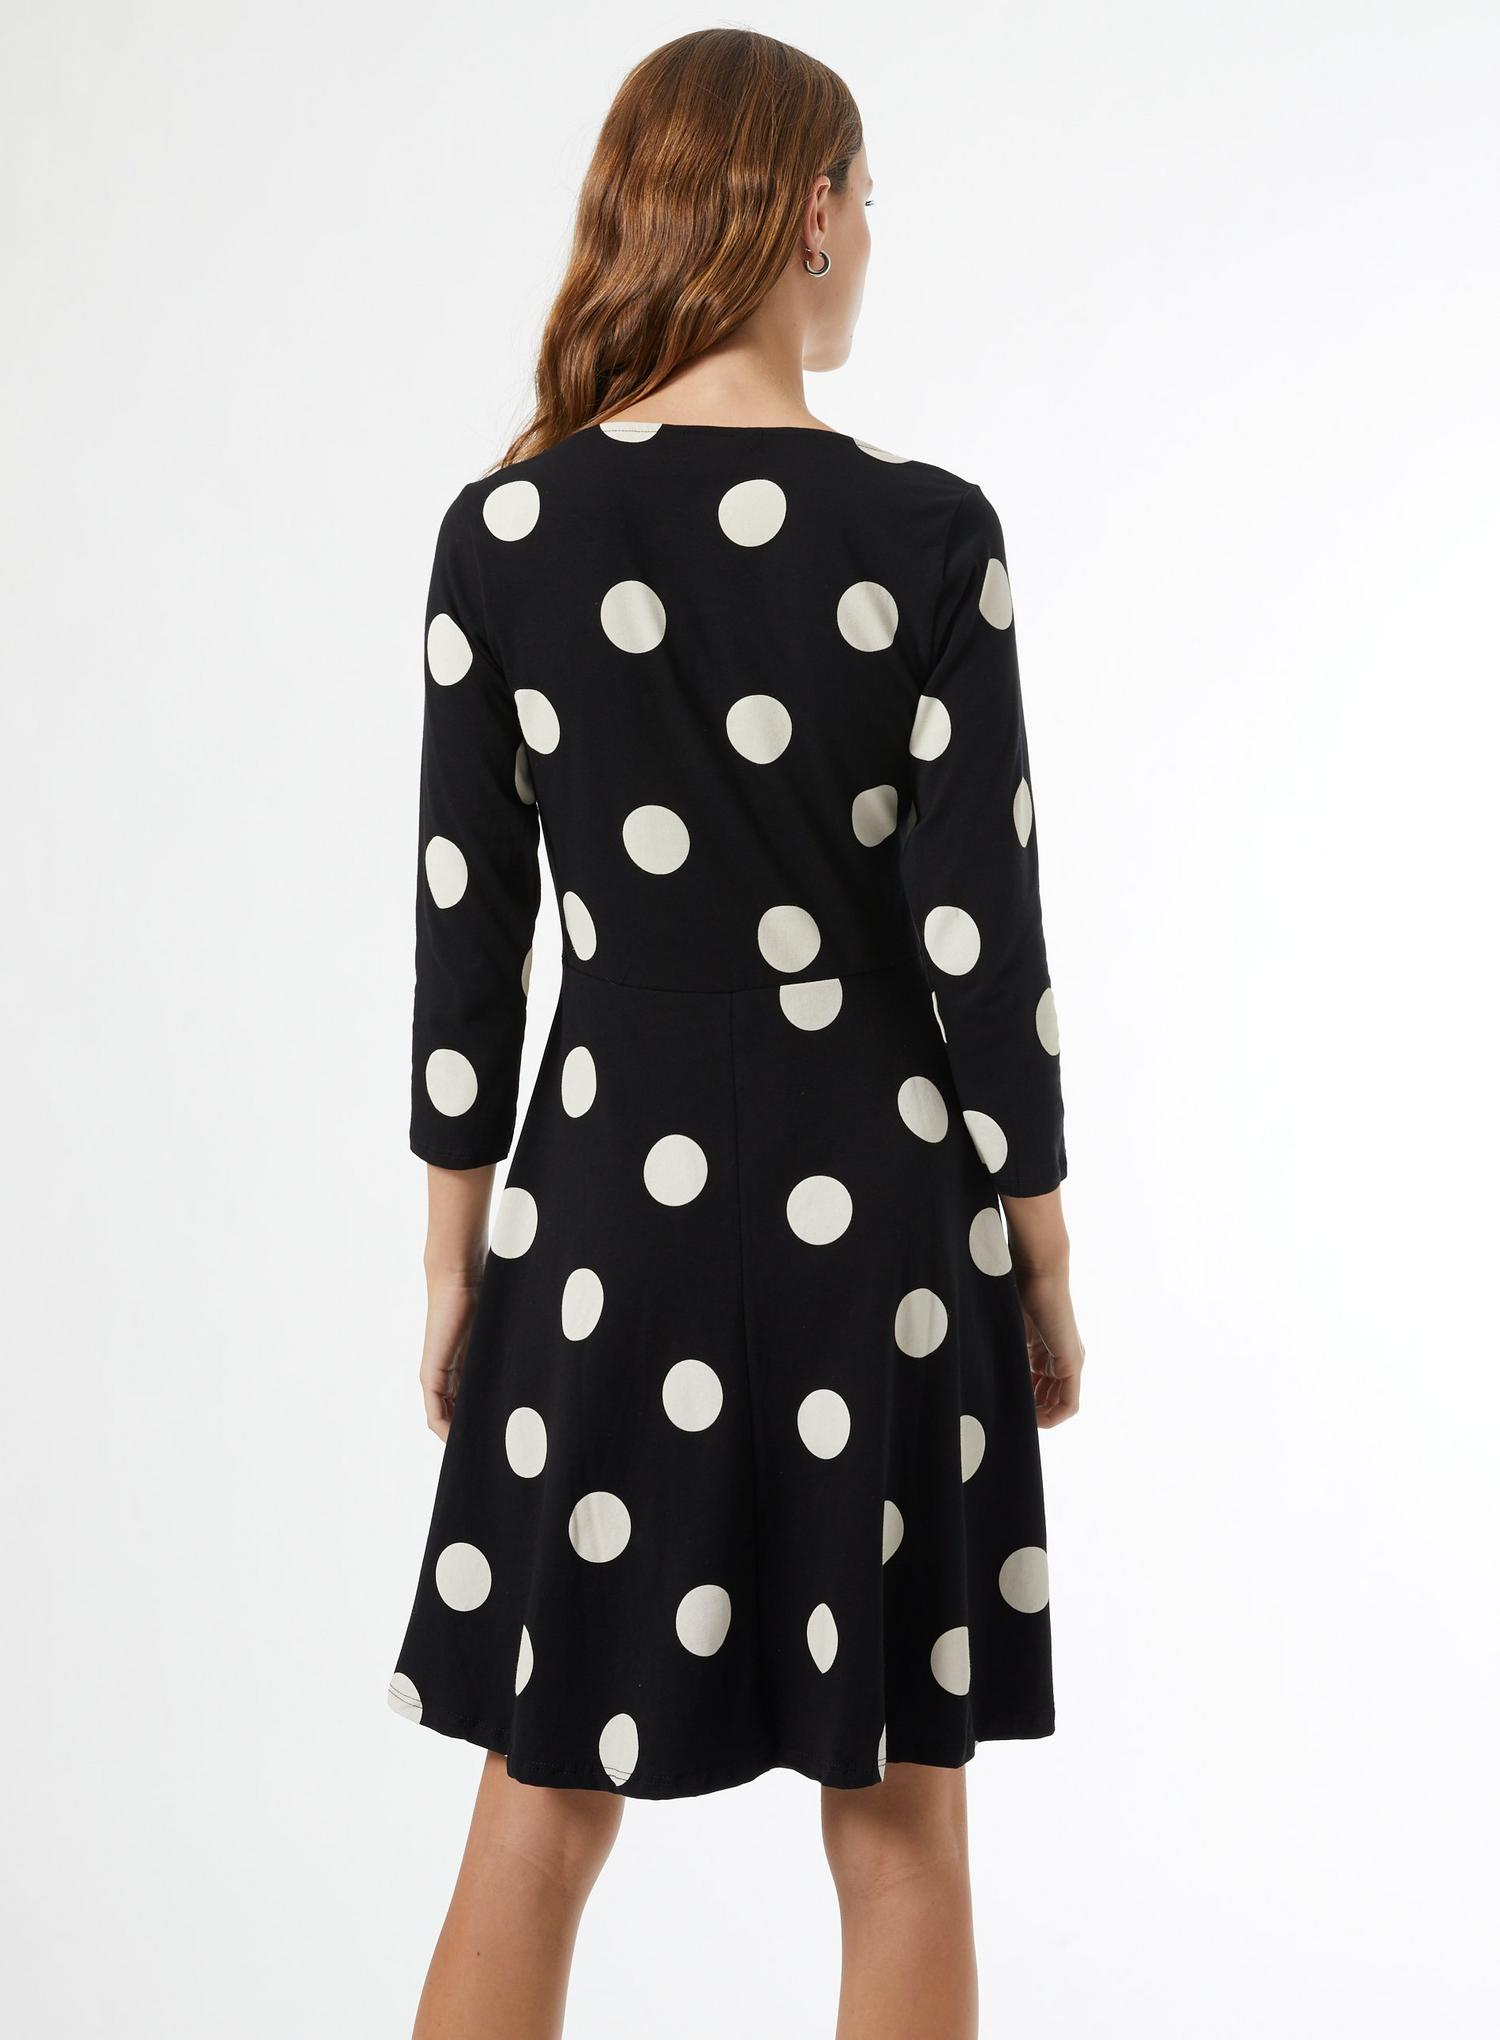 105 Black Spot Ruched Organic Cotton Mini Dress image number 3